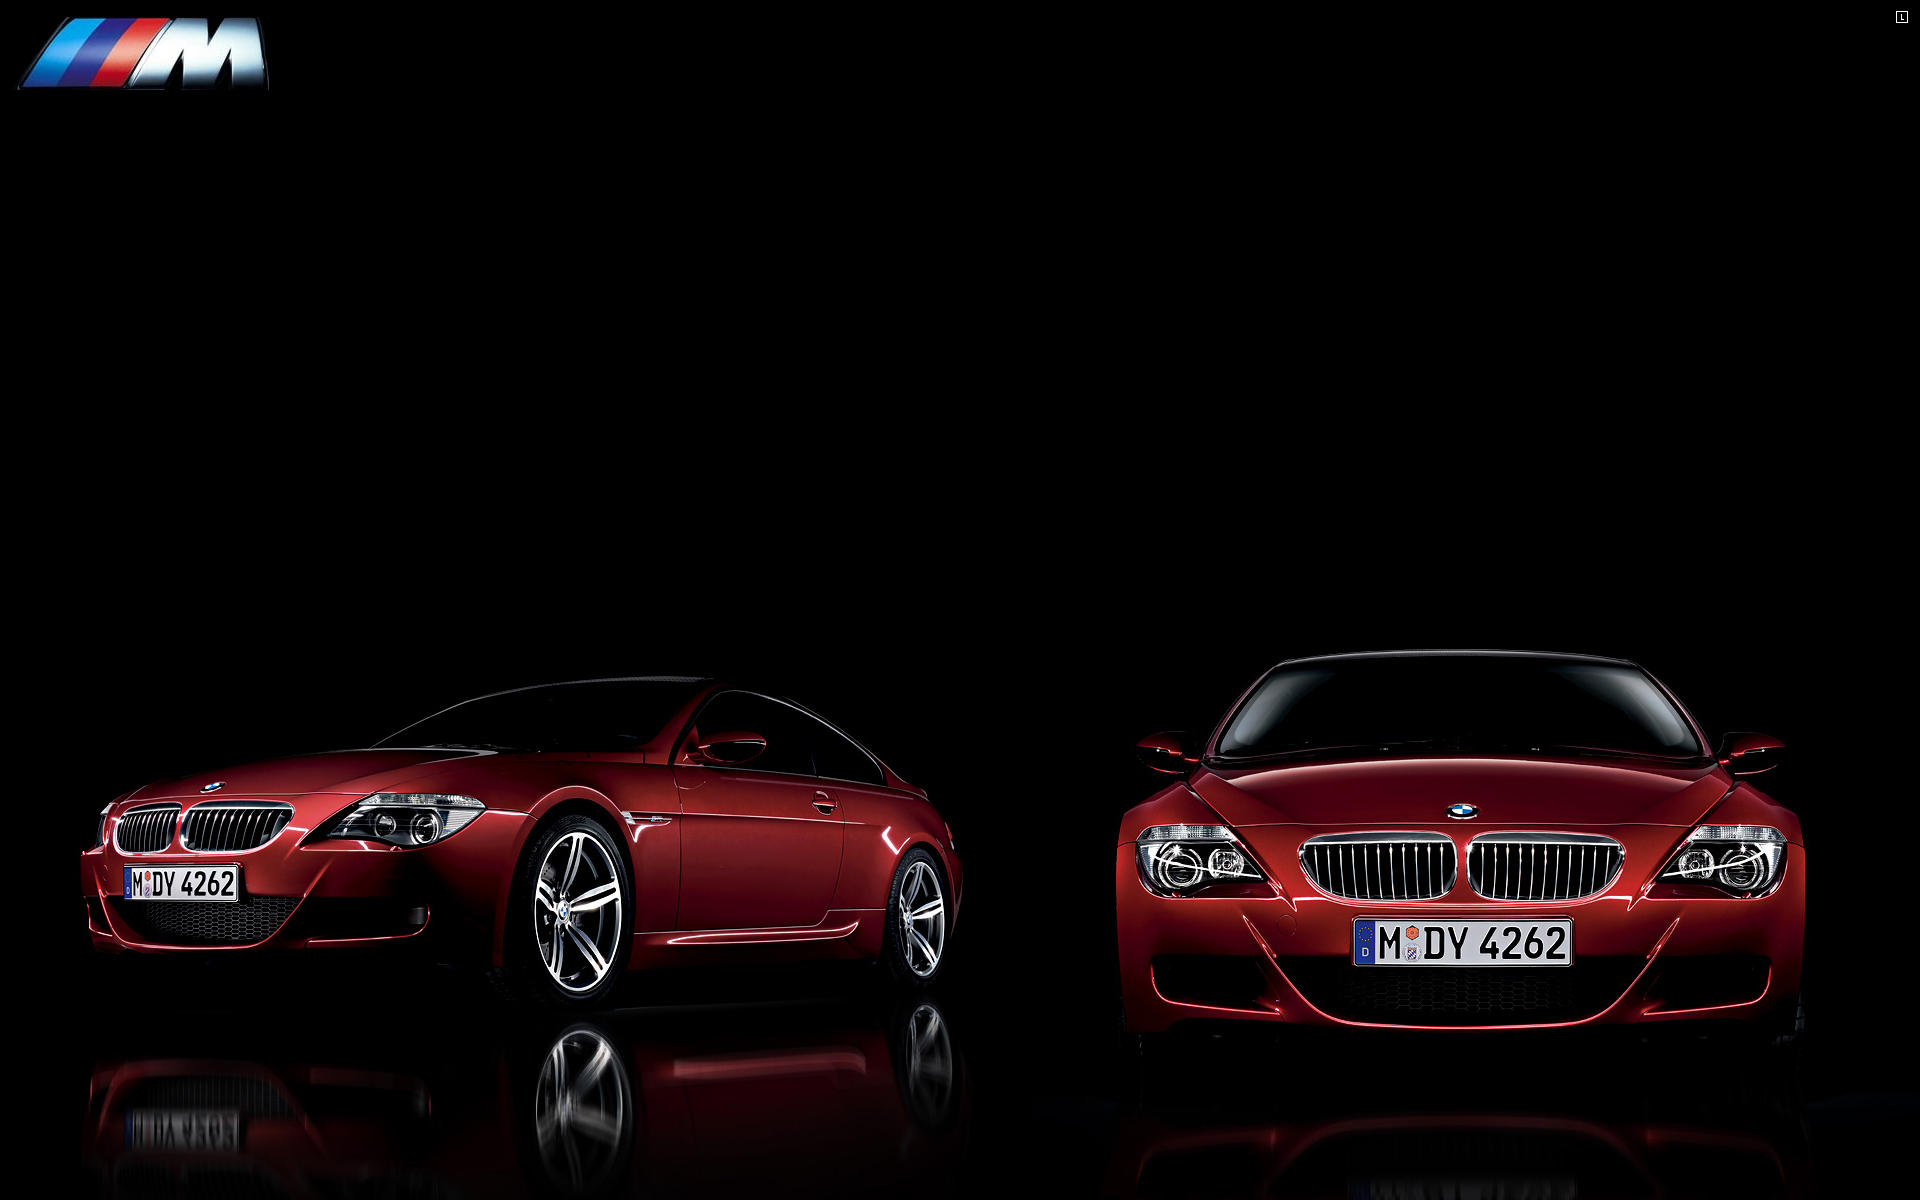 BMW M6 desktop background